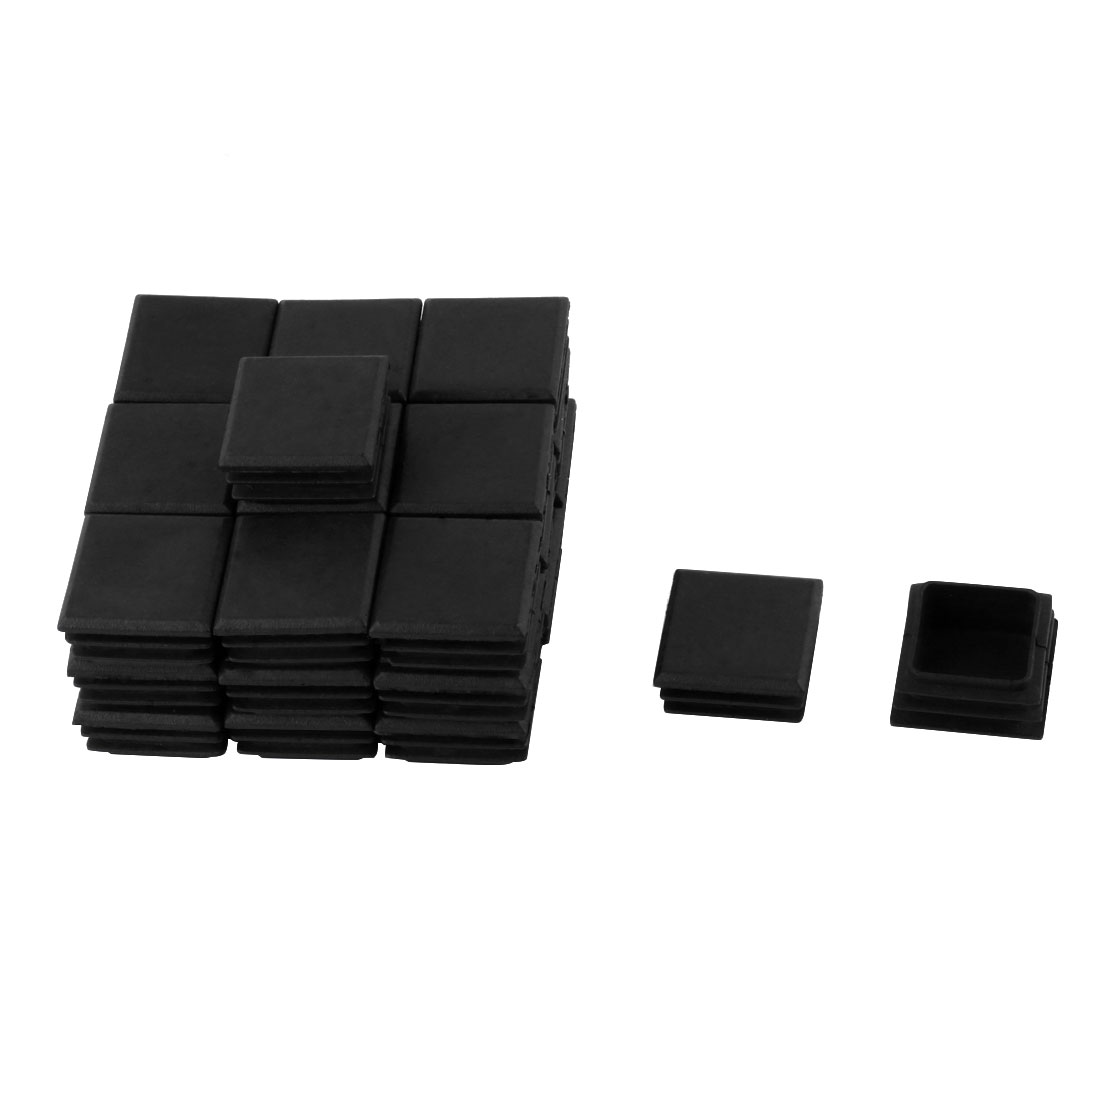 Home Plastic Square Furniture Chair Legs Tubing End Cap Black 30mm x 30mm 30 Pcs